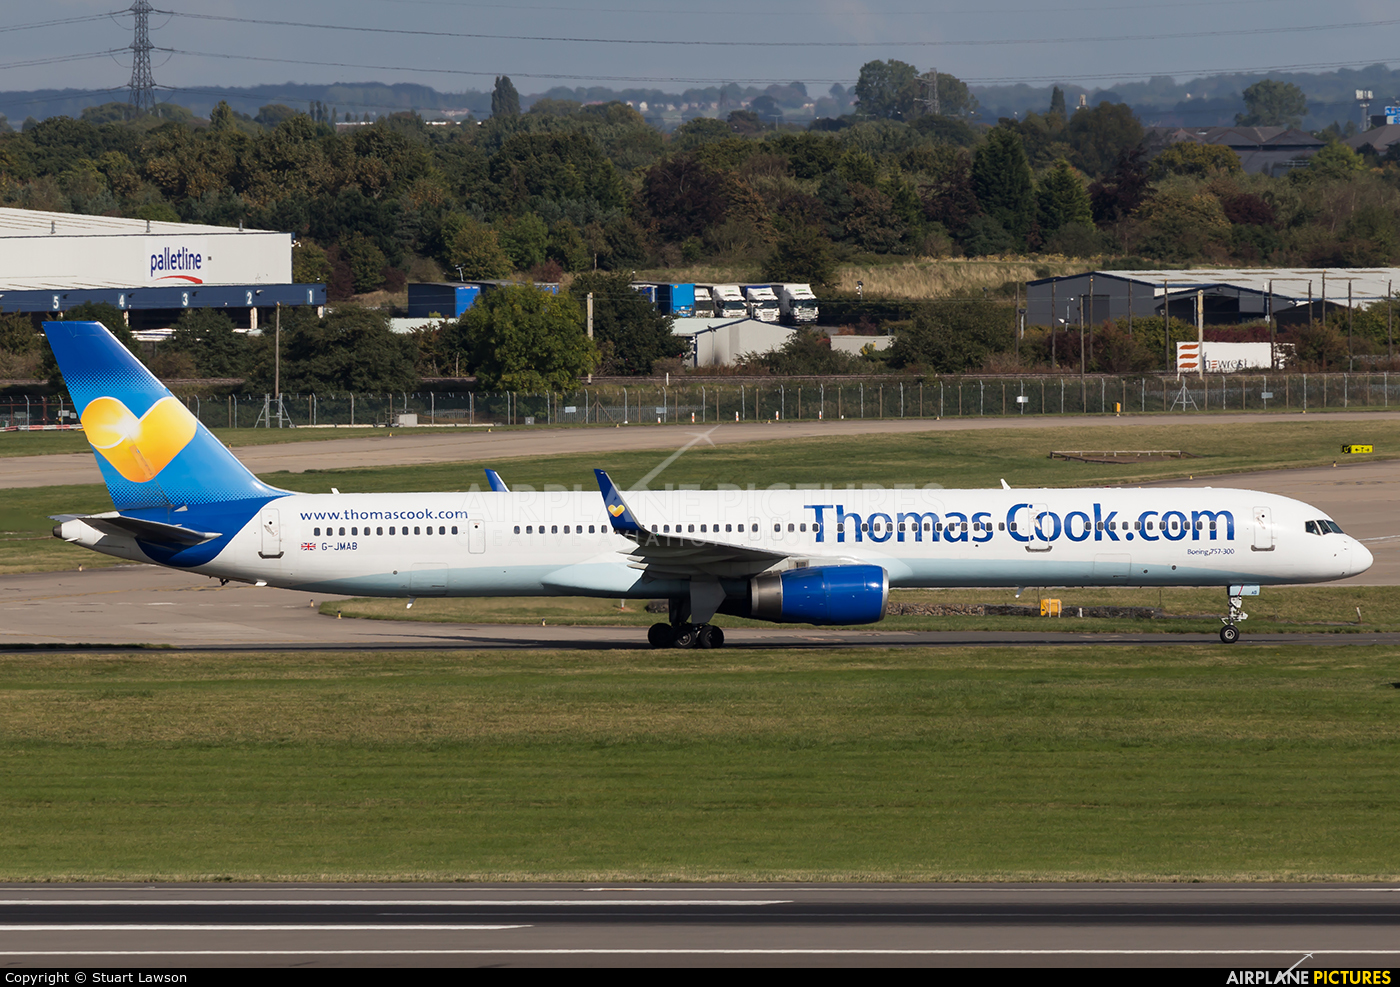 Thomas Cook G-JMAB aircraft at Birmingham